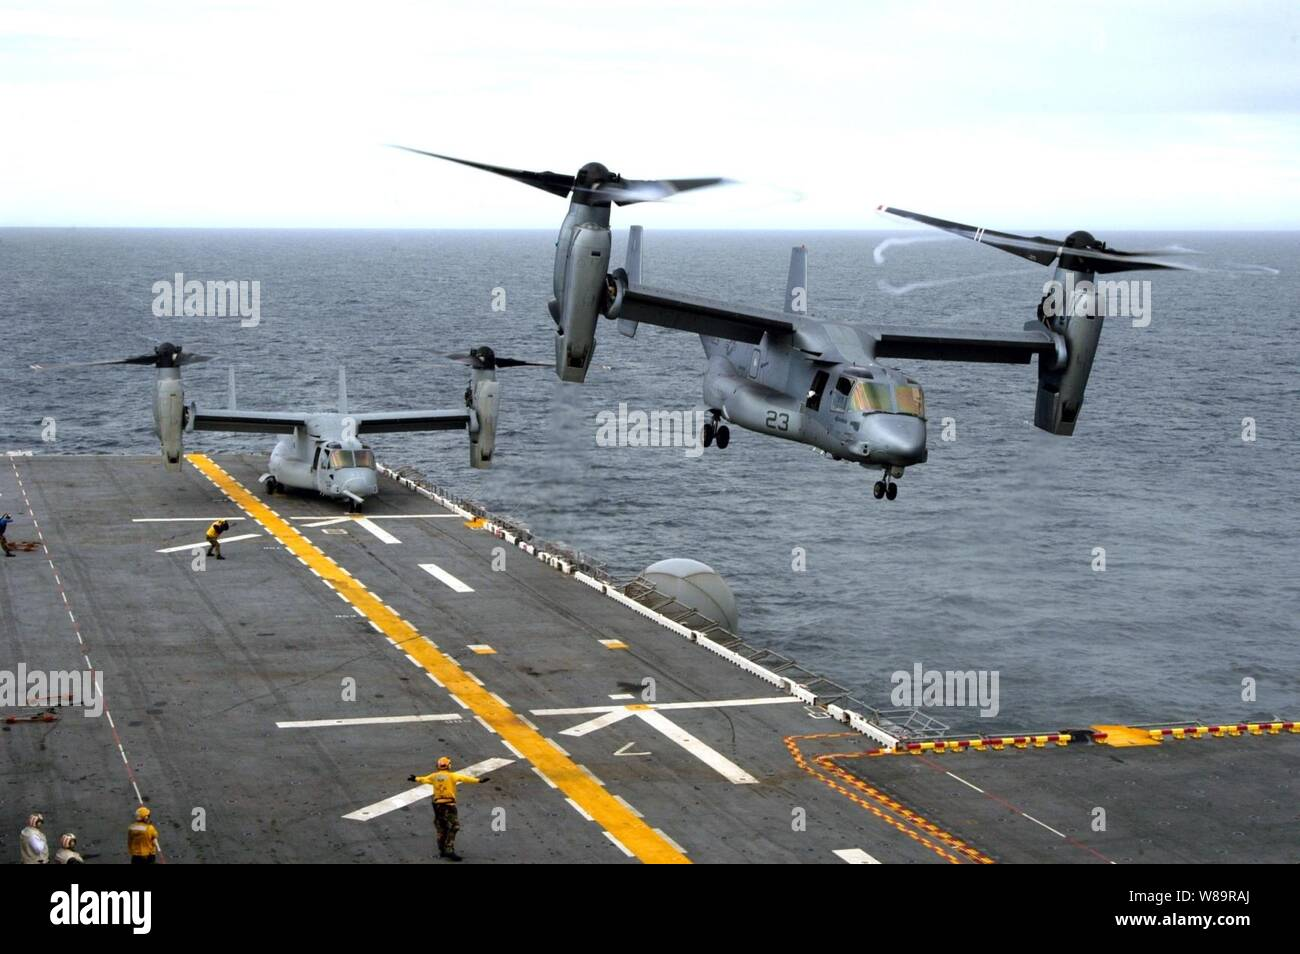 A U.S. Marine Corps MV-22B Osprey executes a vertical take off from the flight deck of the amphibious assault ship USS Wasp (LHD 1) as another waits to launch during flight operations in the Atlantic Ocean on Nov. 15, 2005.  The Osprey is an advanced technology, vertical/short takeoff and landing multipurpose tactical aircraft and is scheduled to replace the aging CH-46E Sea Knight and CH-53D Sea Stallion helicopters currently in service.  These Ospreys are assigned to Marine Tiltrotor Operational Test and Evaluation Squadron 22 of Marine Corps Air Station New River, N.C. Stock Photo